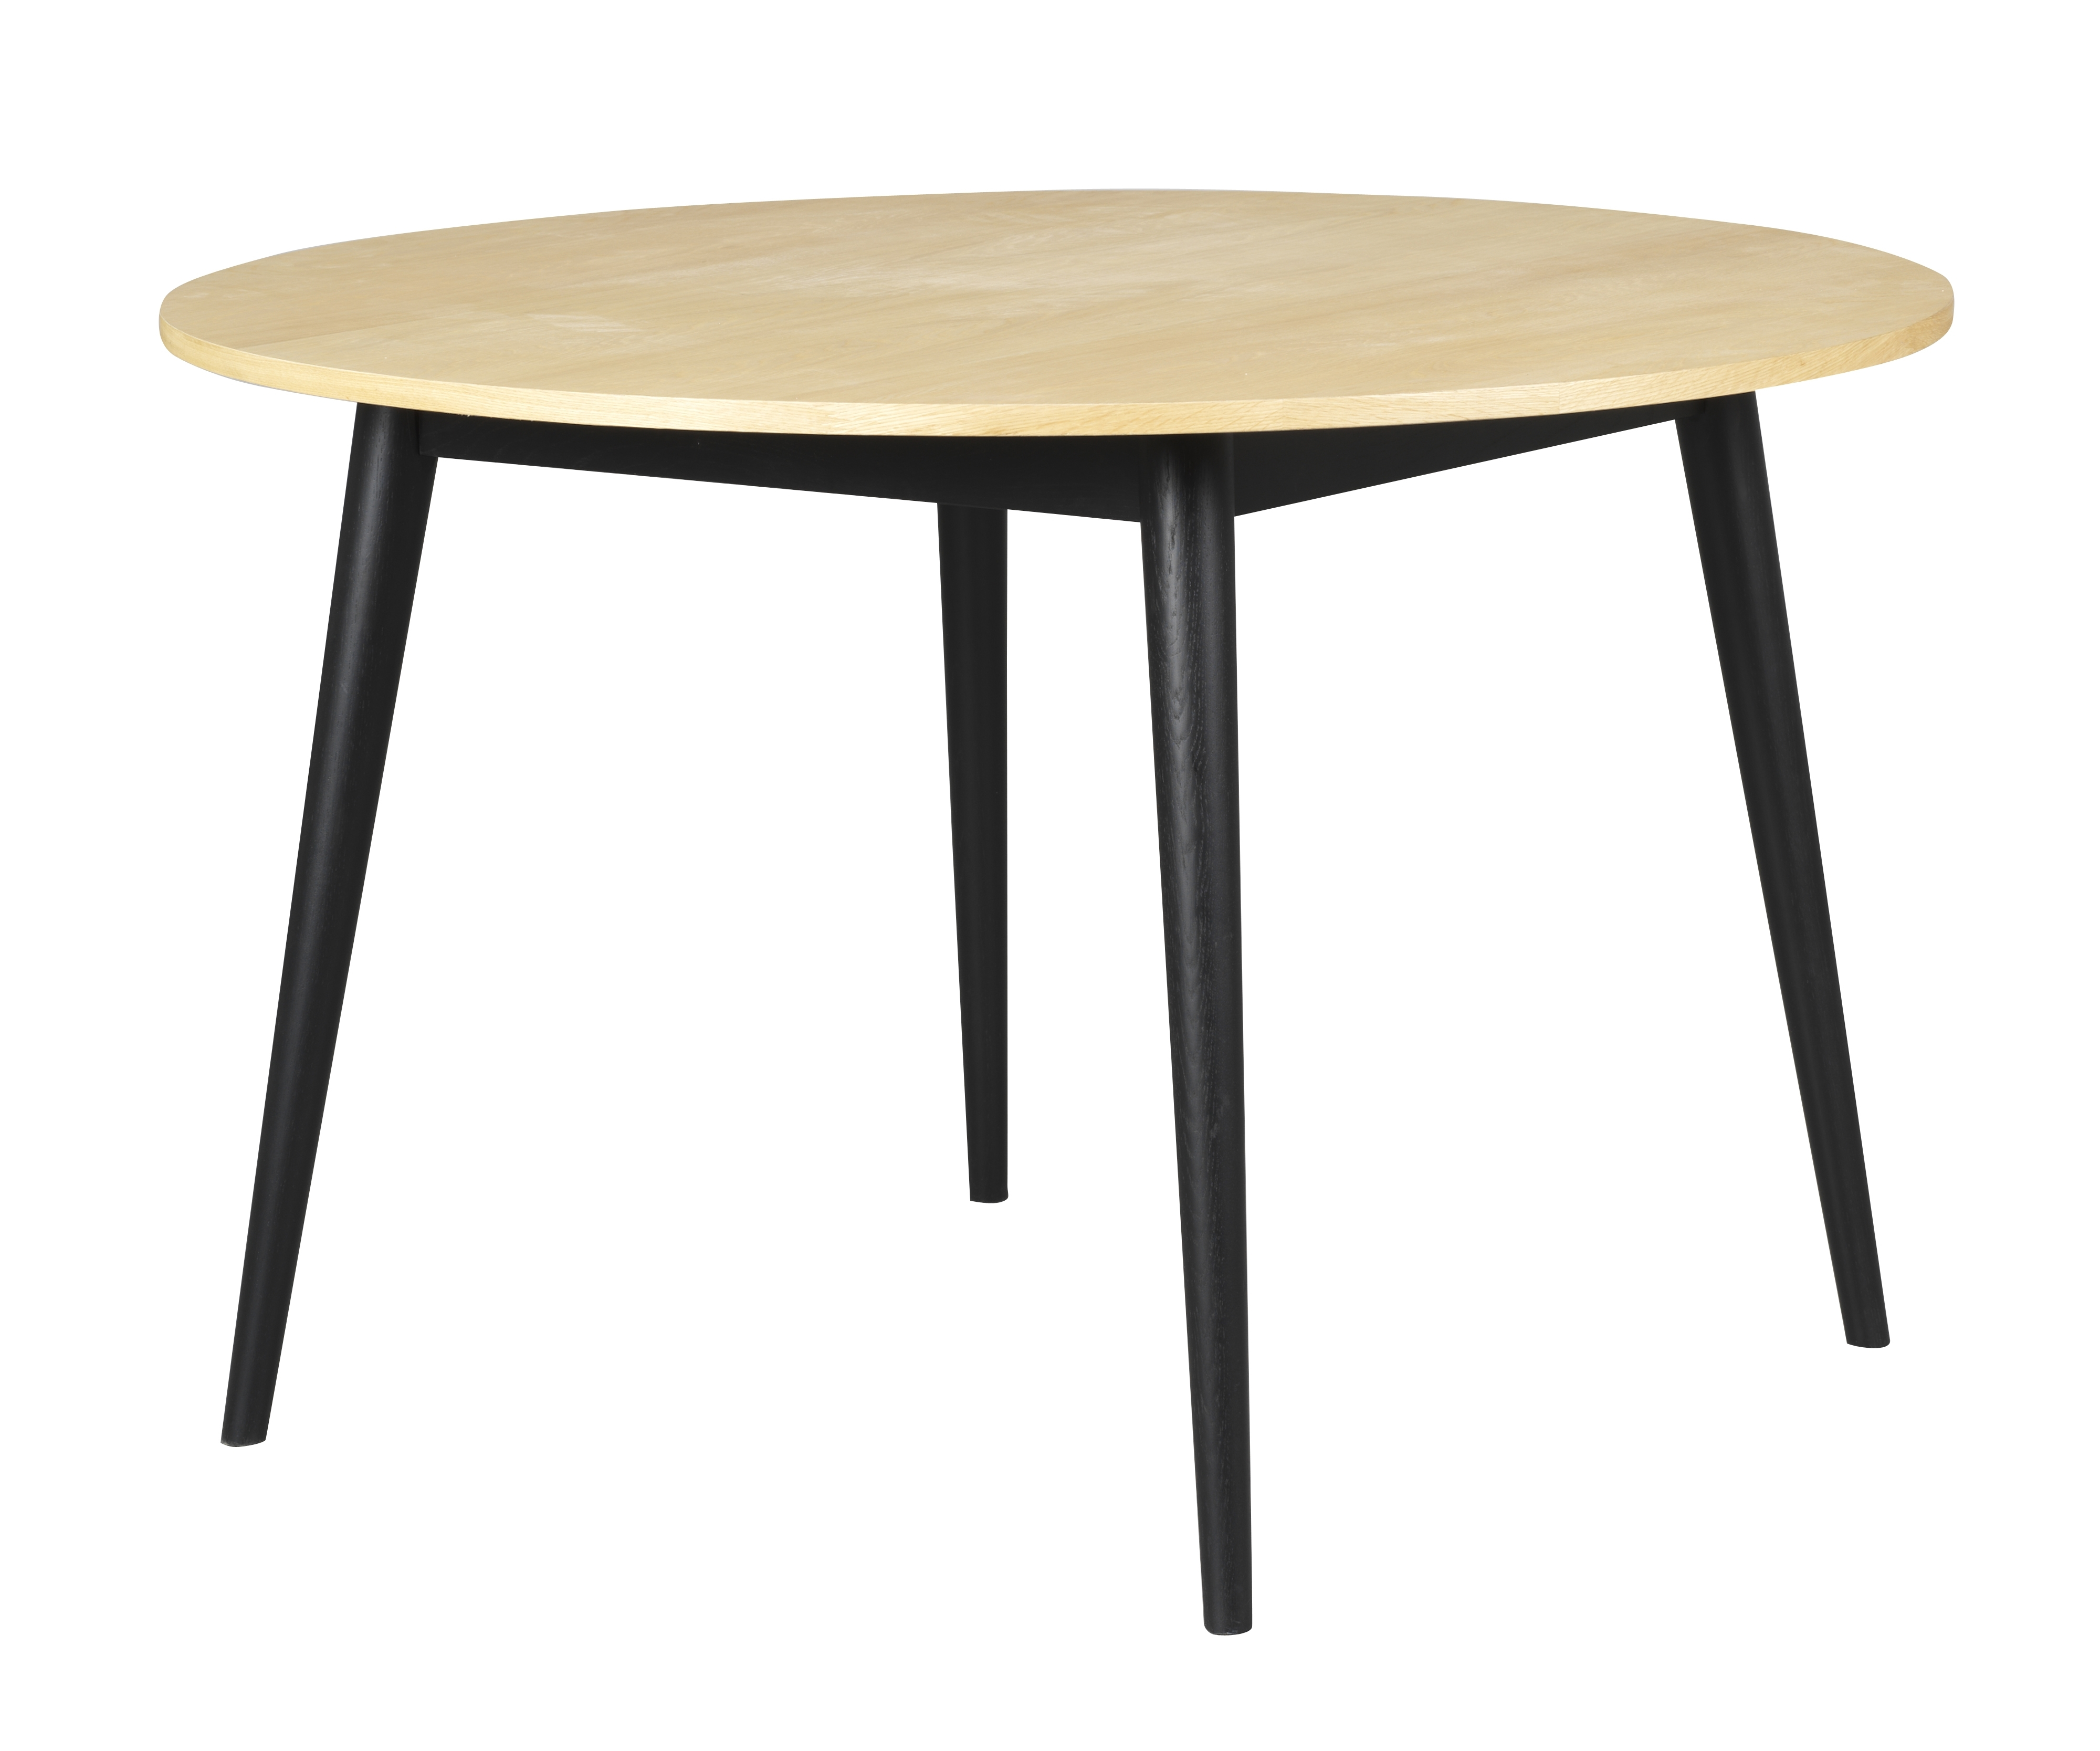 Furniture From Rowico Pertaining To Favorite Vienna Dining Tables (View 8 of 25)